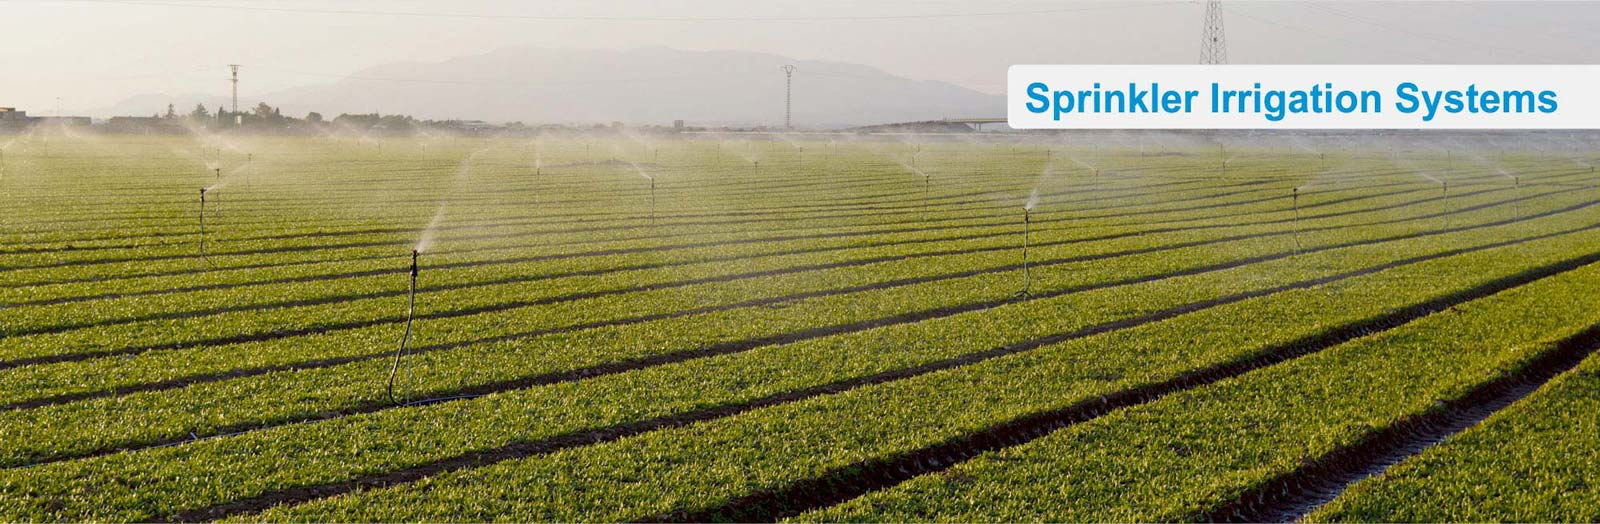 israeli drip irrigation technology pdf